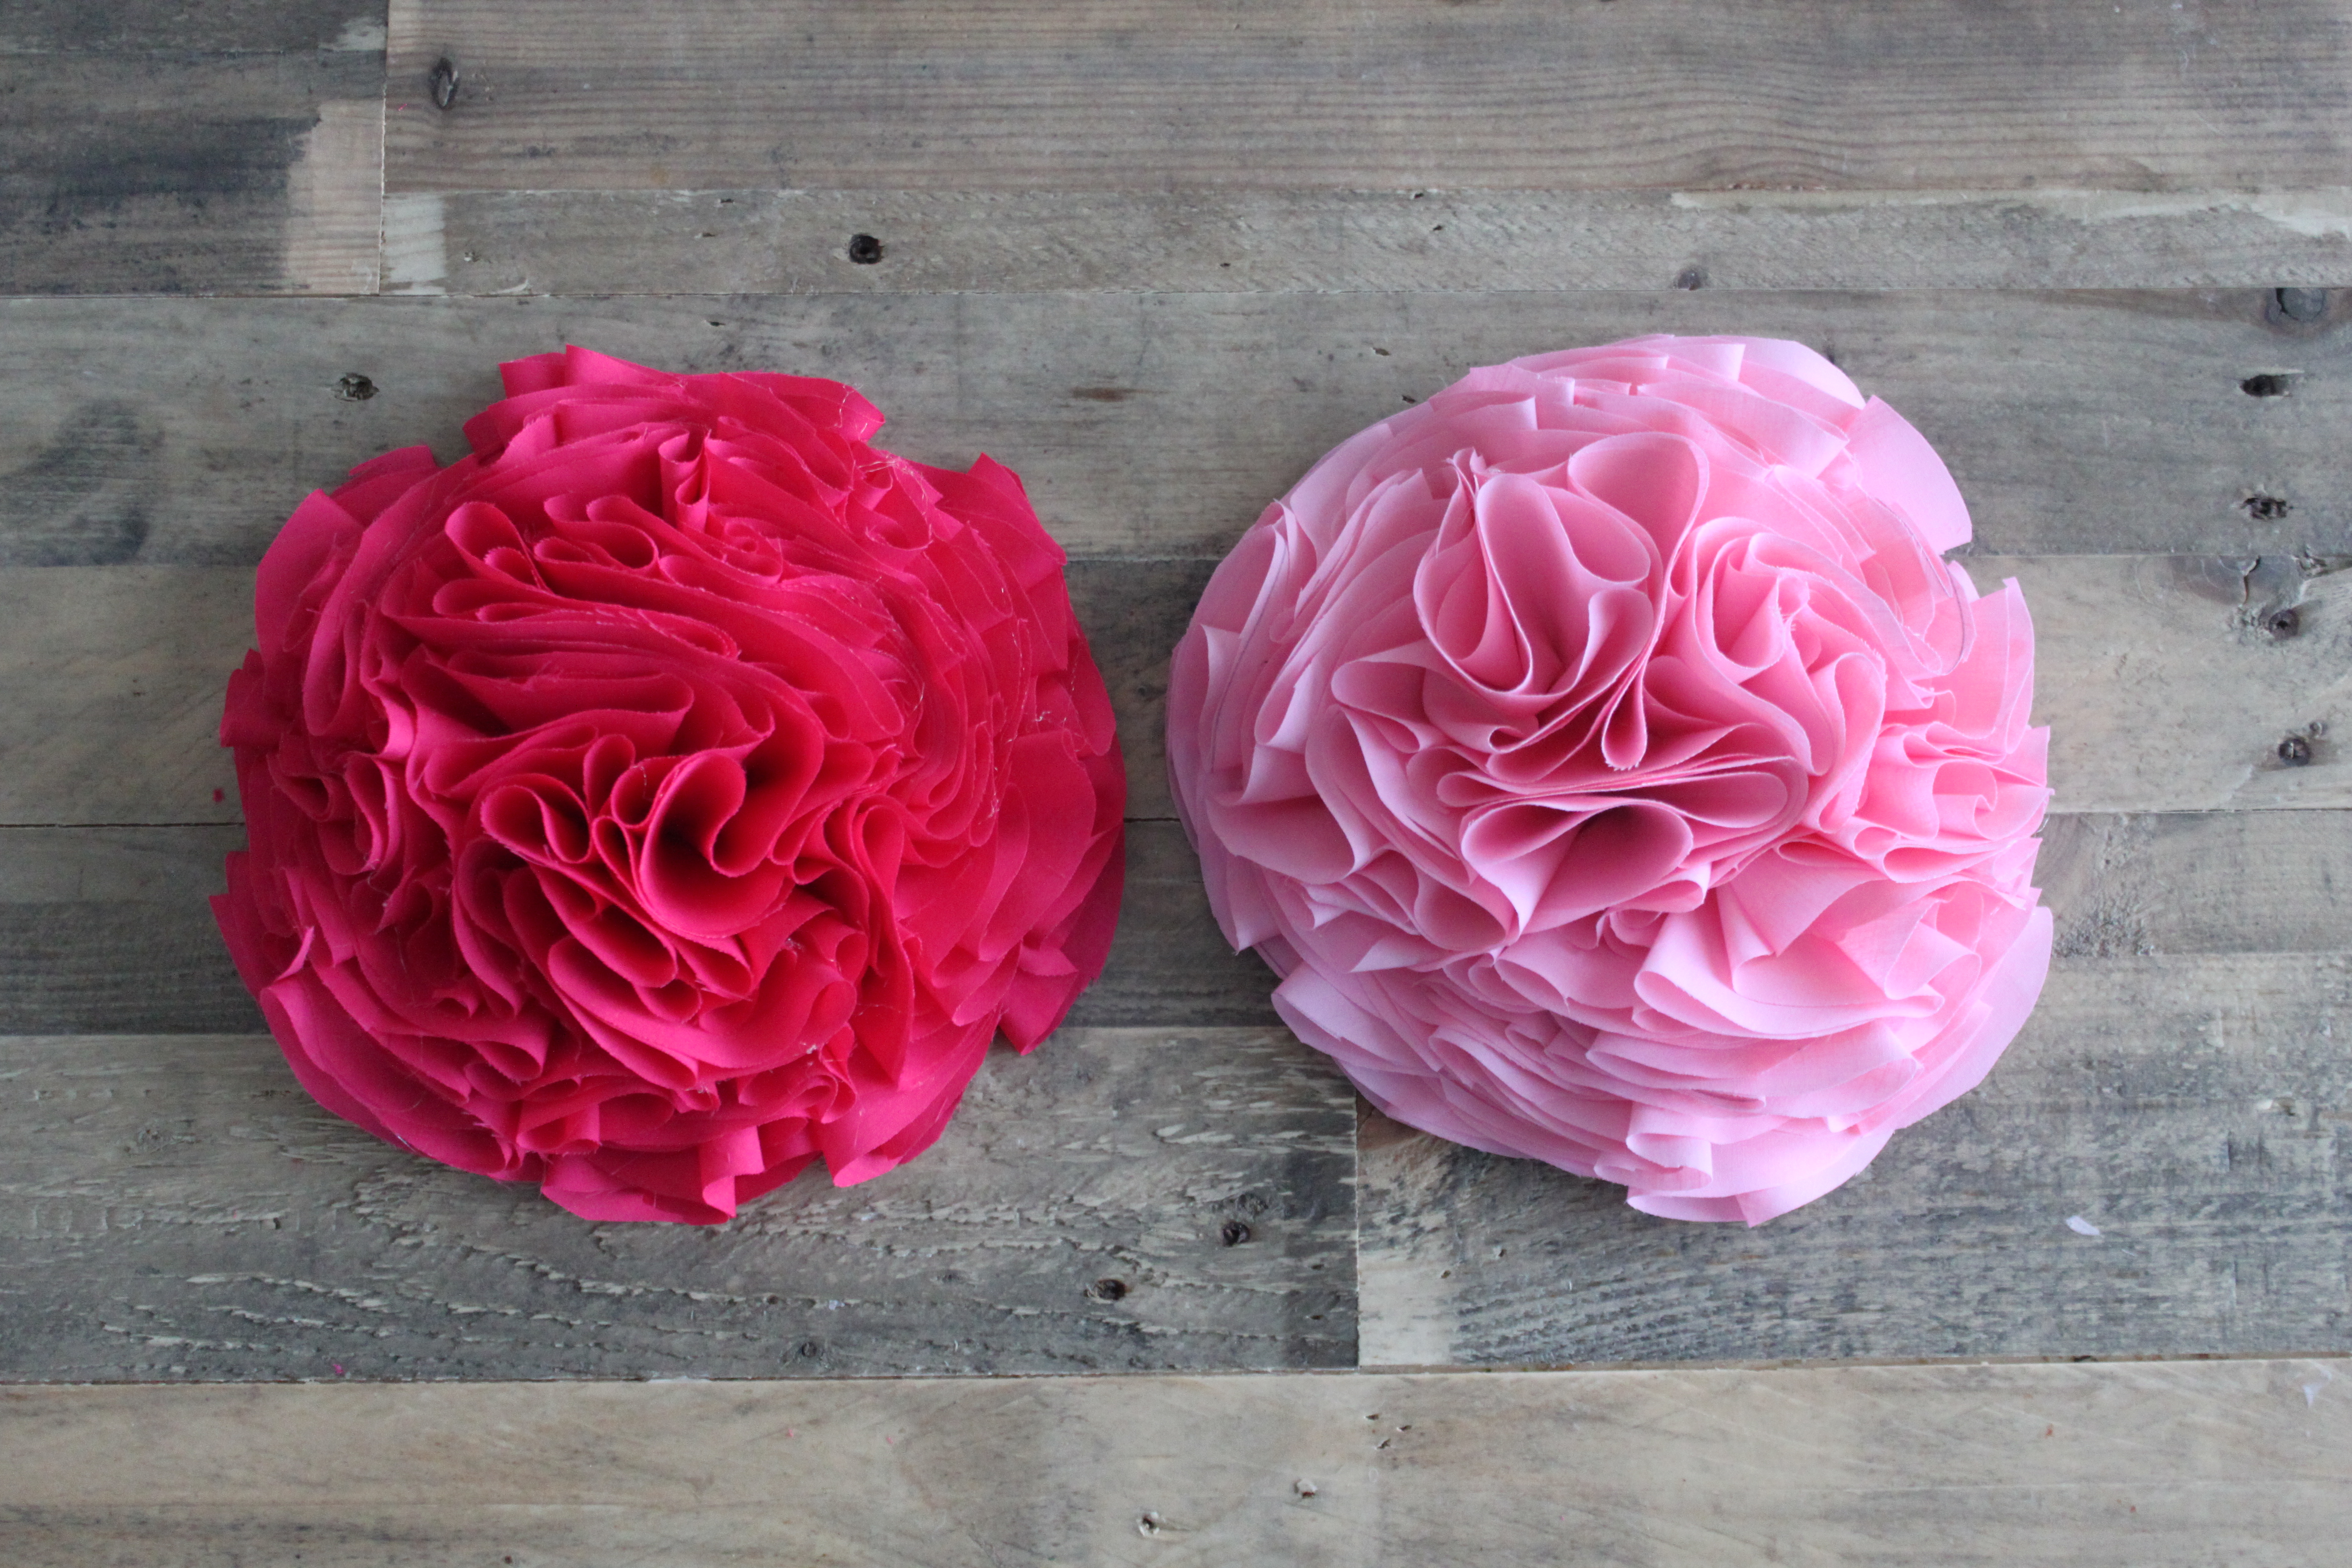 Uncategorized Diy Fabric Flower diy fabric wall flowers mommys me time img 8652